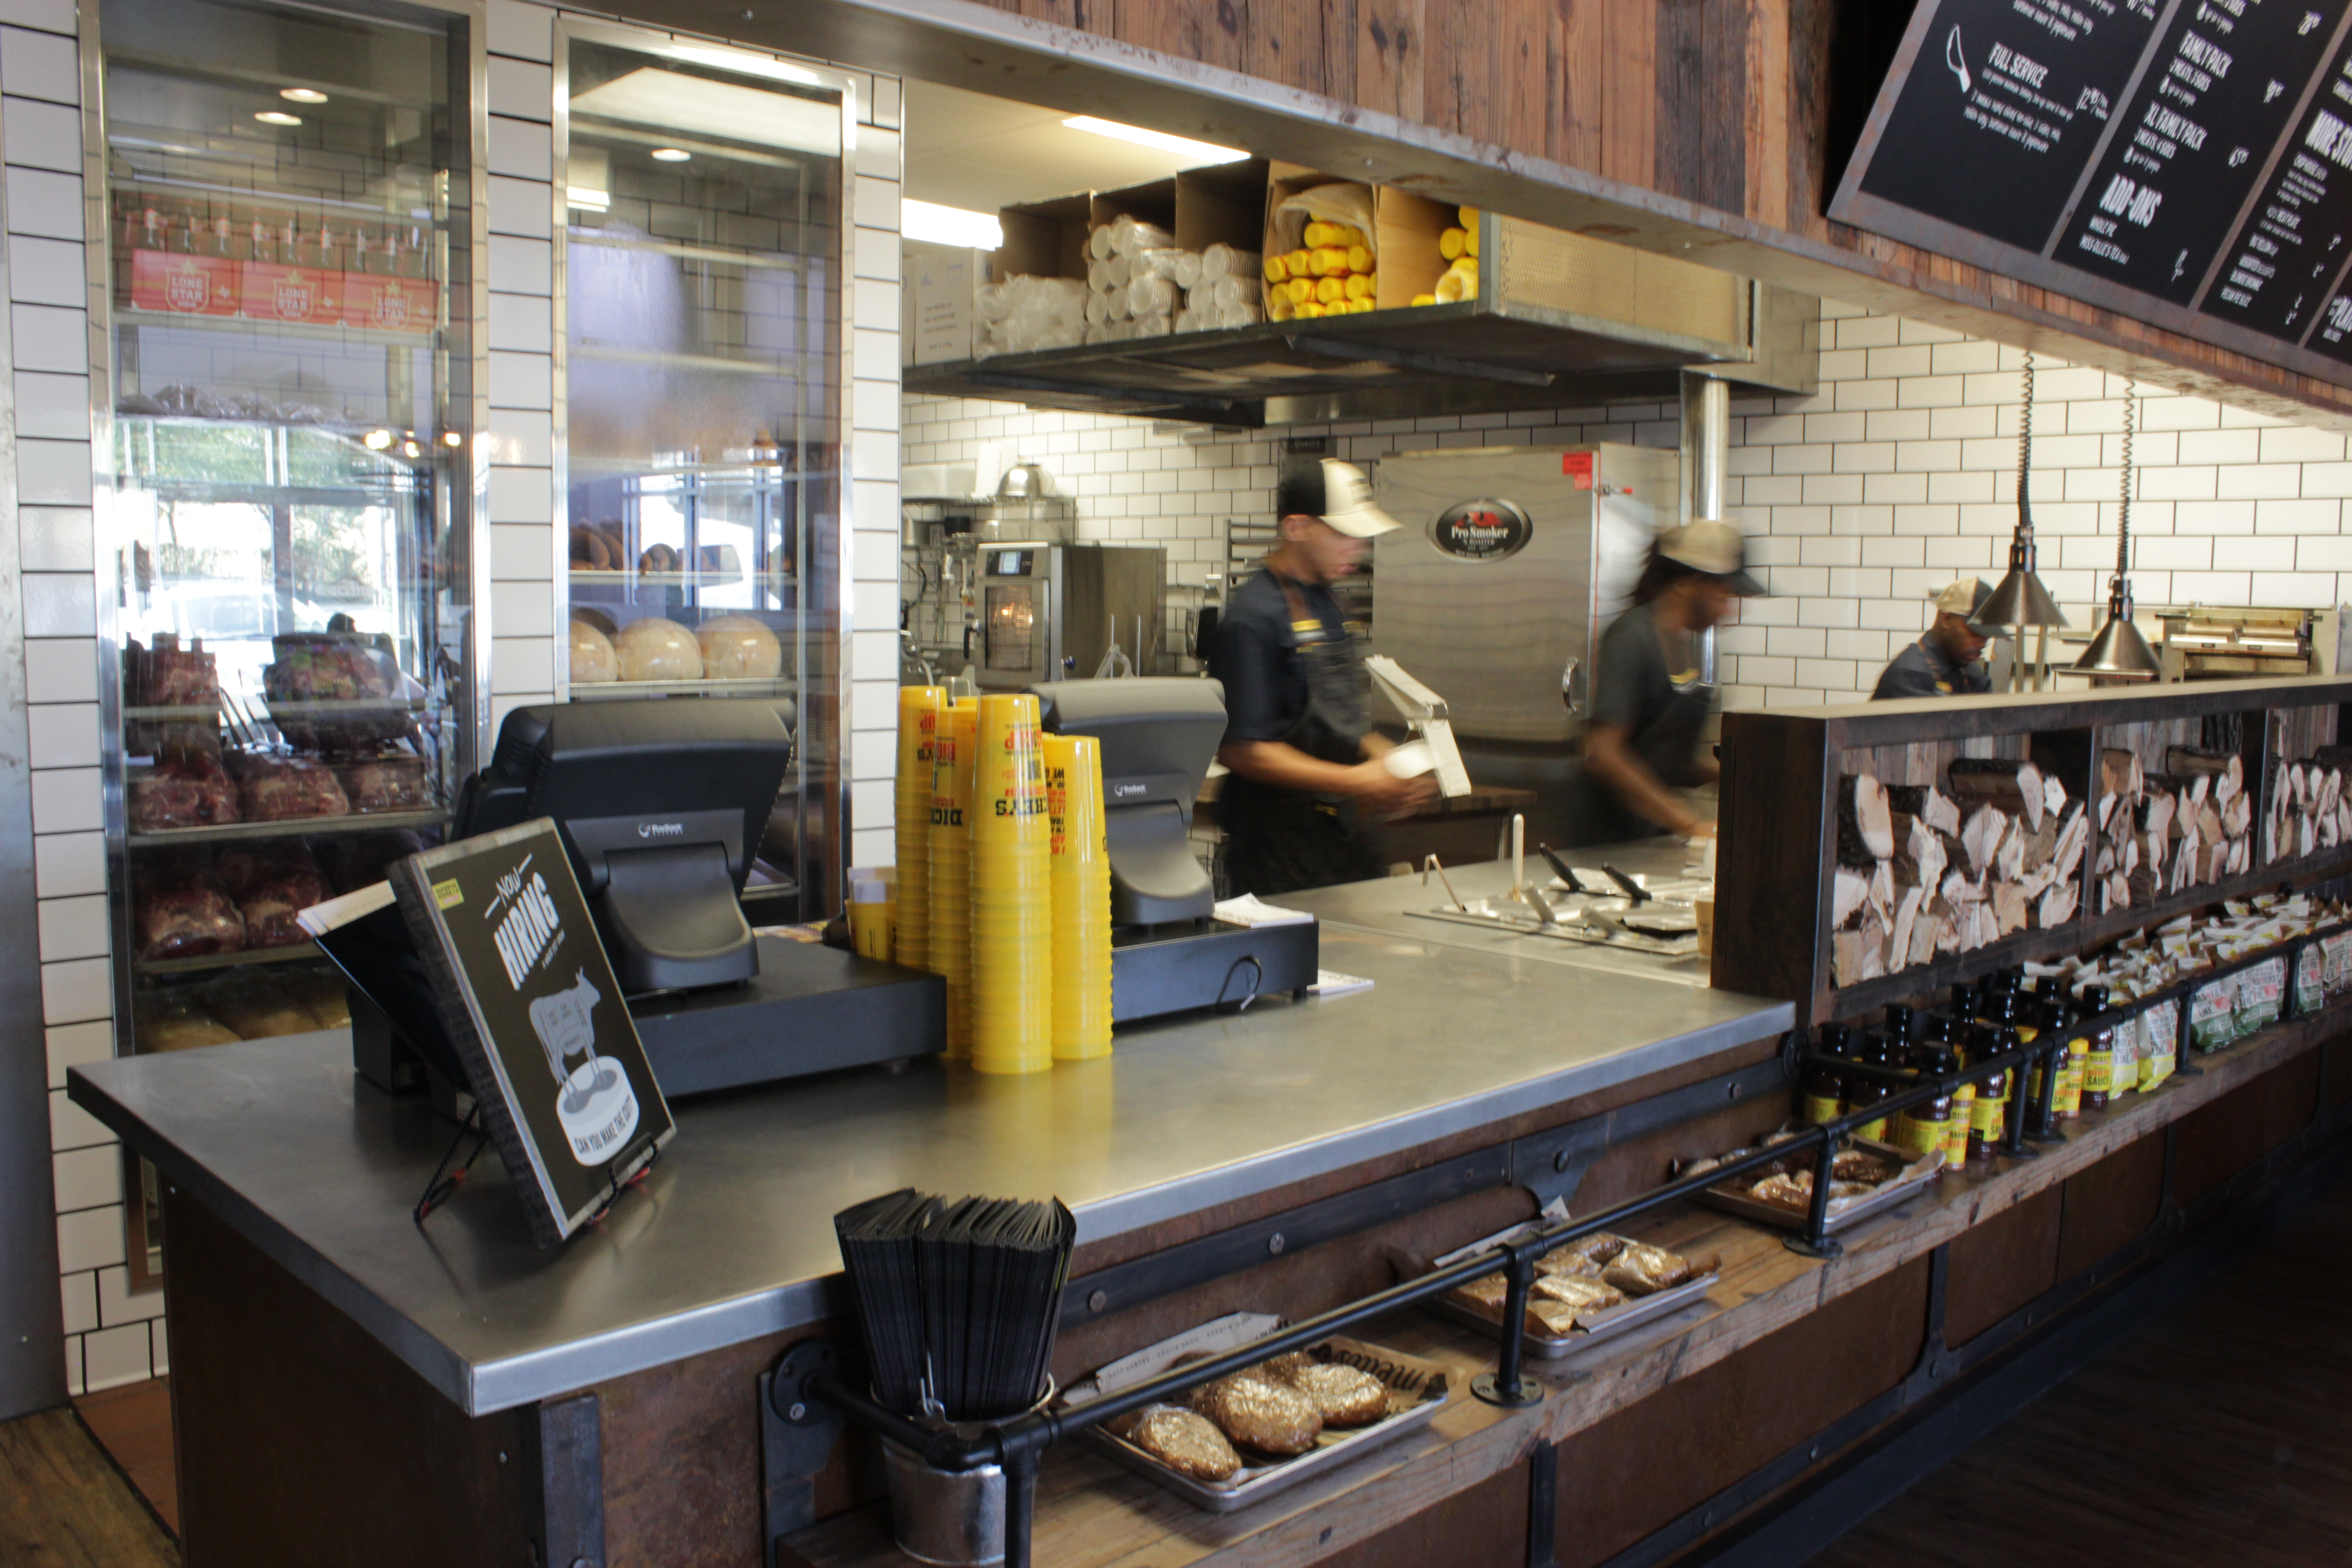 Foodservice Equipment Reports: KITCHEN DESIGN: Smokin' In Style